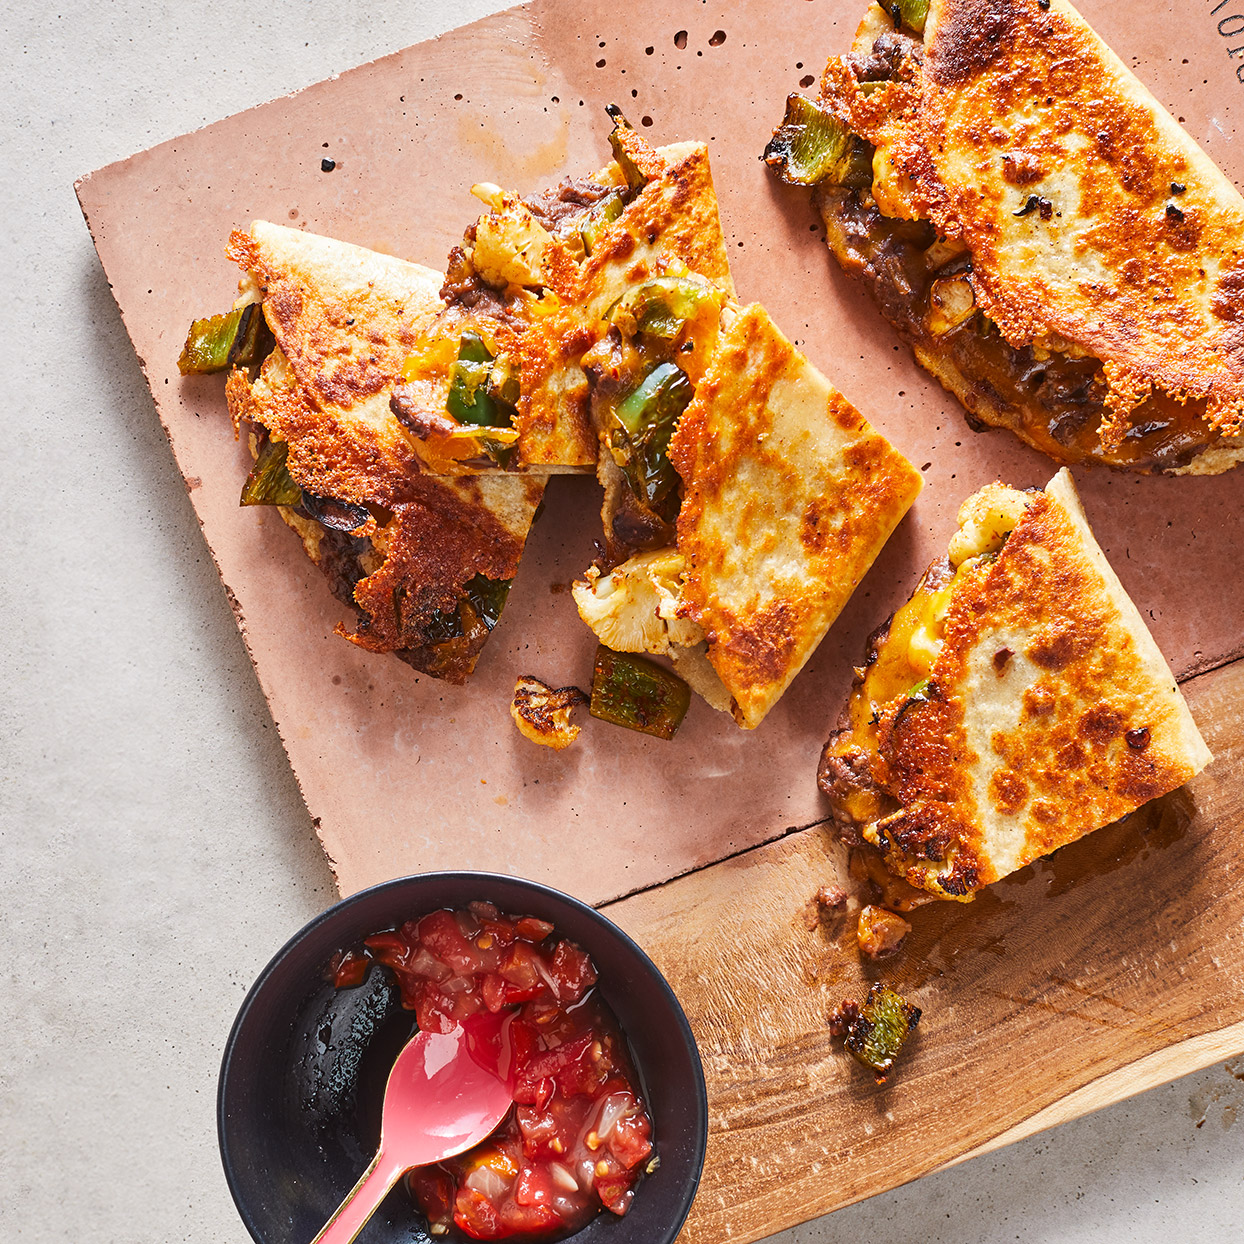 Poblano peppers add a touch of heat to these vegetarian quesadillas, but a sweet bell pepper is tasty, too, if you want something milder. Start these quesadillas in the oven and finish them off in a skillet for melty cheese and crispy tortillas. Source: EatingWell Magazine, March 2020